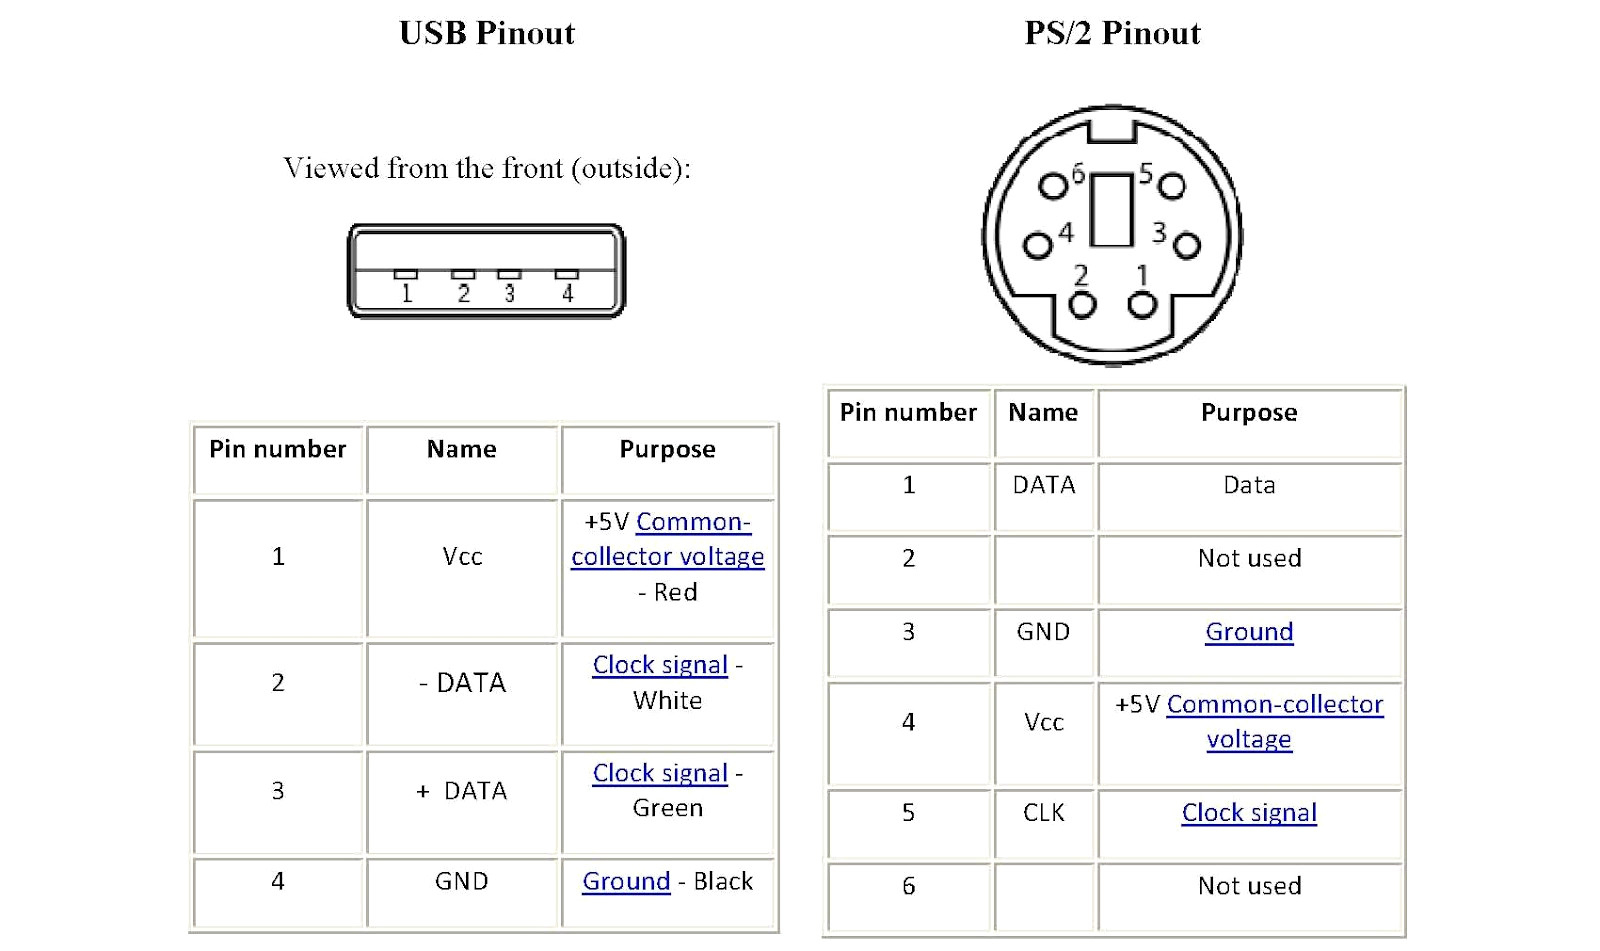 Ps2 Keyboard To Usb Wiring Diagram | Wiring Diagram - Computor Keyboard Wiring Diagram For Usb